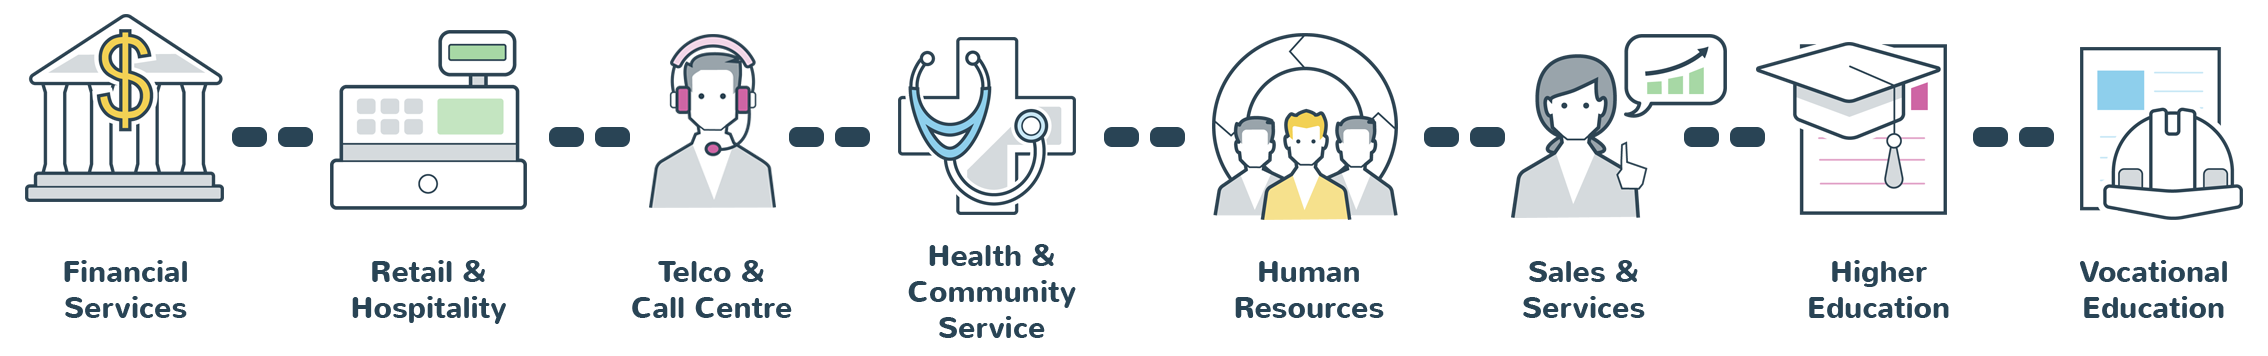 Our Guroo Producer team is experienced in building award-winning eLearning solutions for Financial Services, Retail & Hospitality, Telco & Call Centre, Health & Community Service, Human Resources, Sales & Services, Higher Education and Vocational Education.